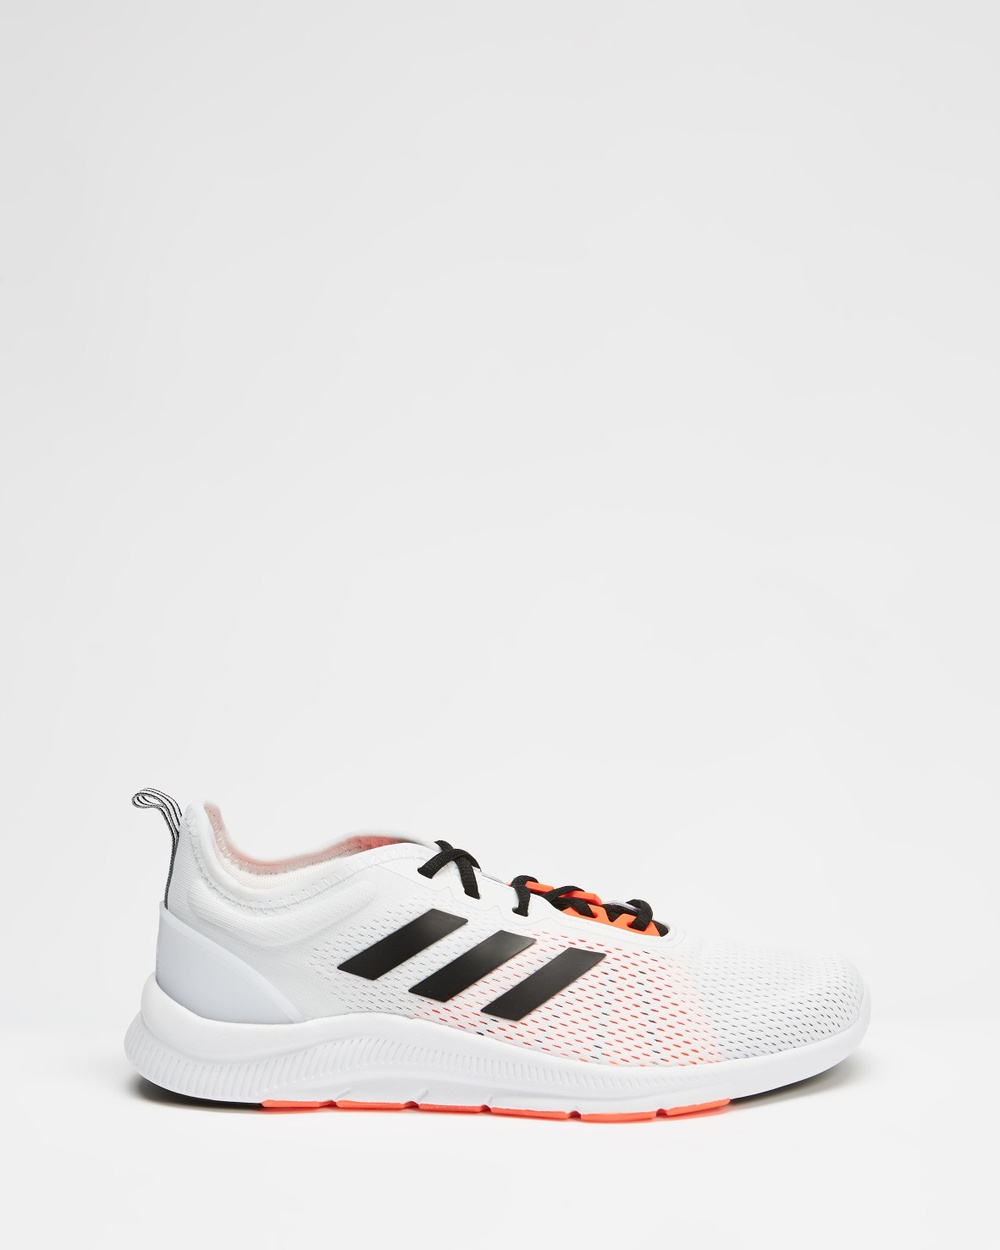 adidas Performance Asweetrain Shoes Men's Training Footwear White, Core Black & Solar Red